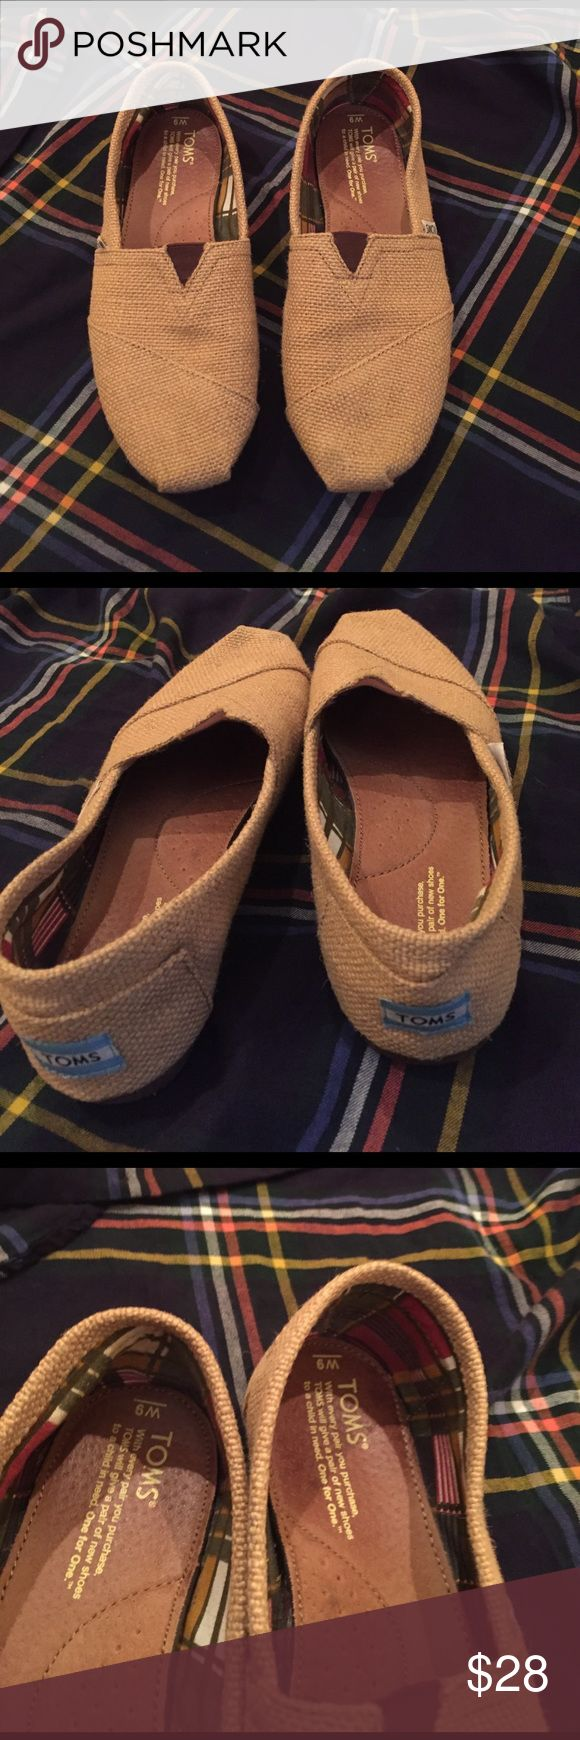 Burlap TOMS Classics Burlap TOMS Classics. Size 9. Excellent Used Condition, only worn a few times for short duration. Comfortable shoes for all day wear. Great for travel! TOMS Shoes Flats & Loafers